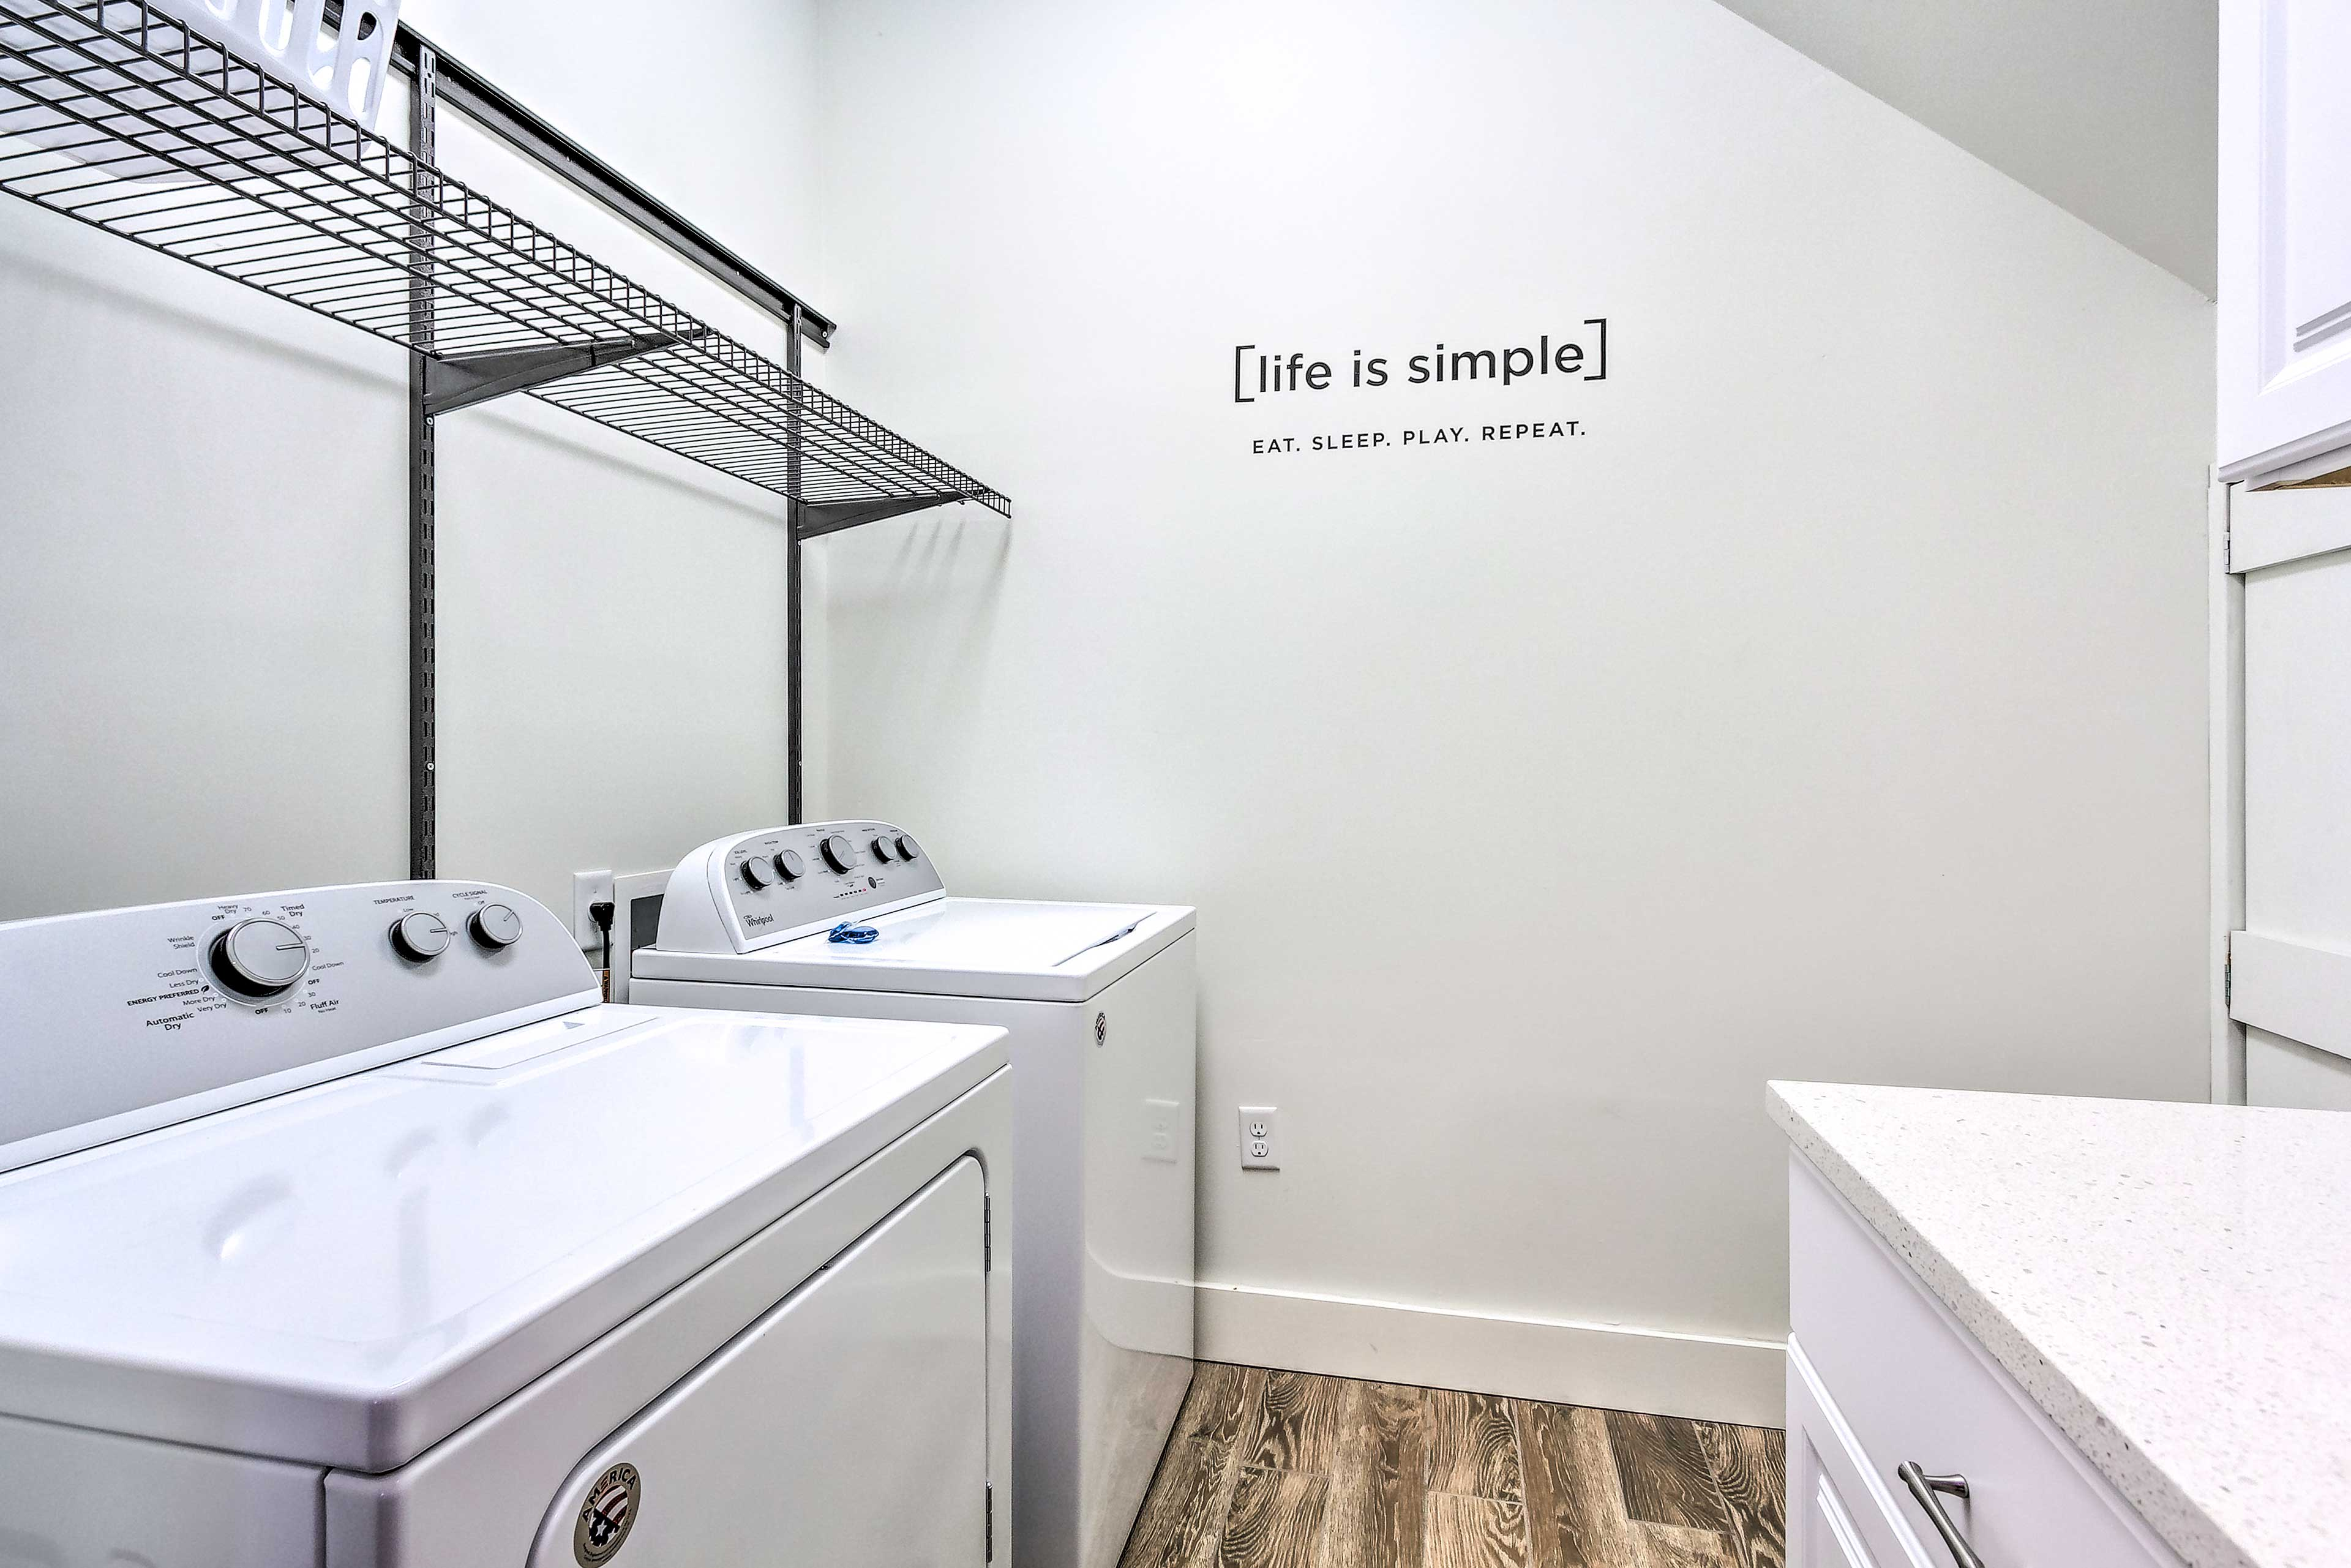 The home helps you keep up with life's simple tasks, like laundry!